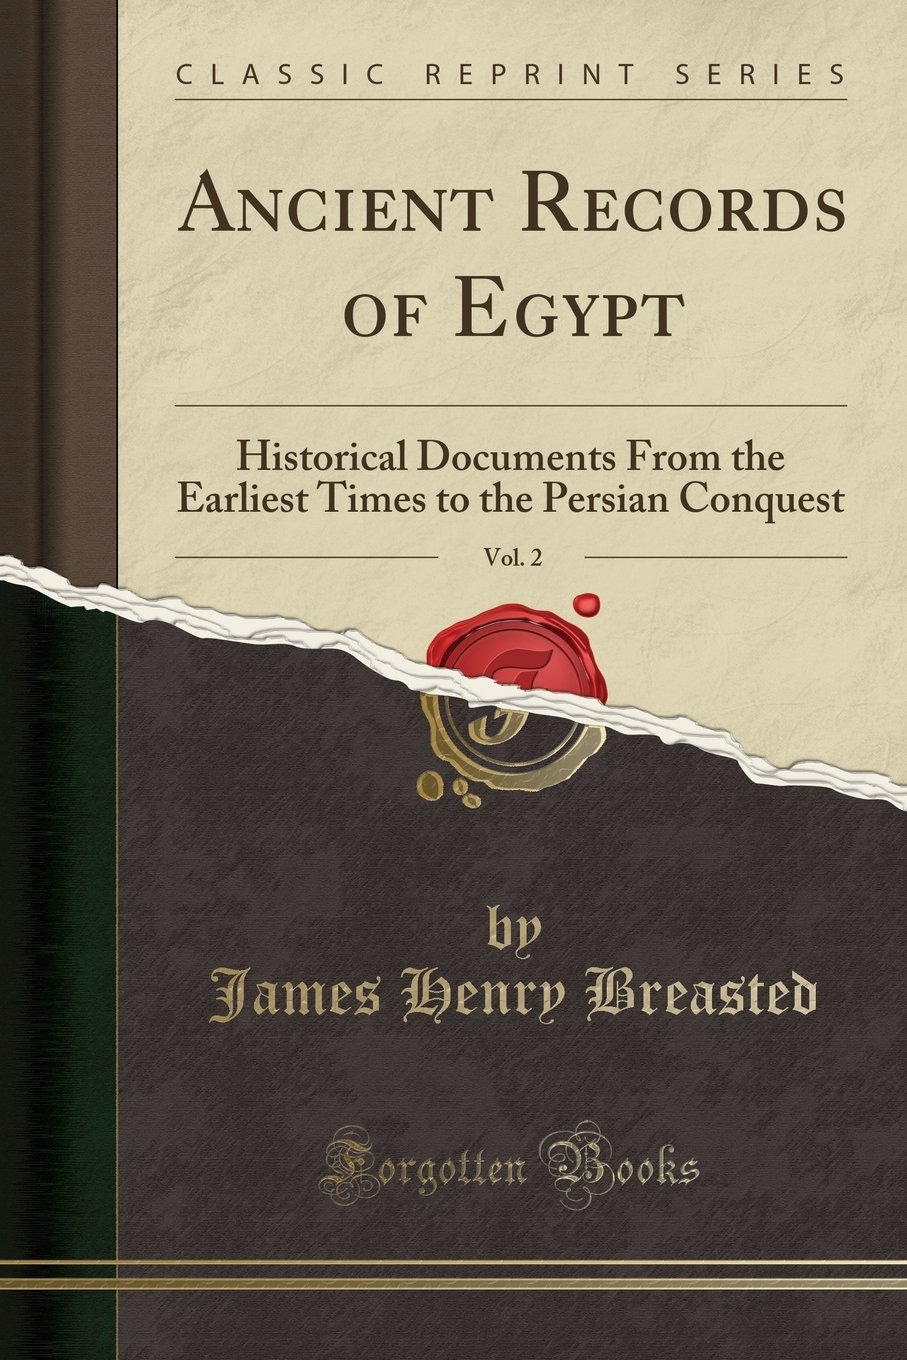 Ancient Records of Egypt, Vol. 2: Historical Documents From the Earliest Times to the Persian Conquest (Classic Reprint) ebook